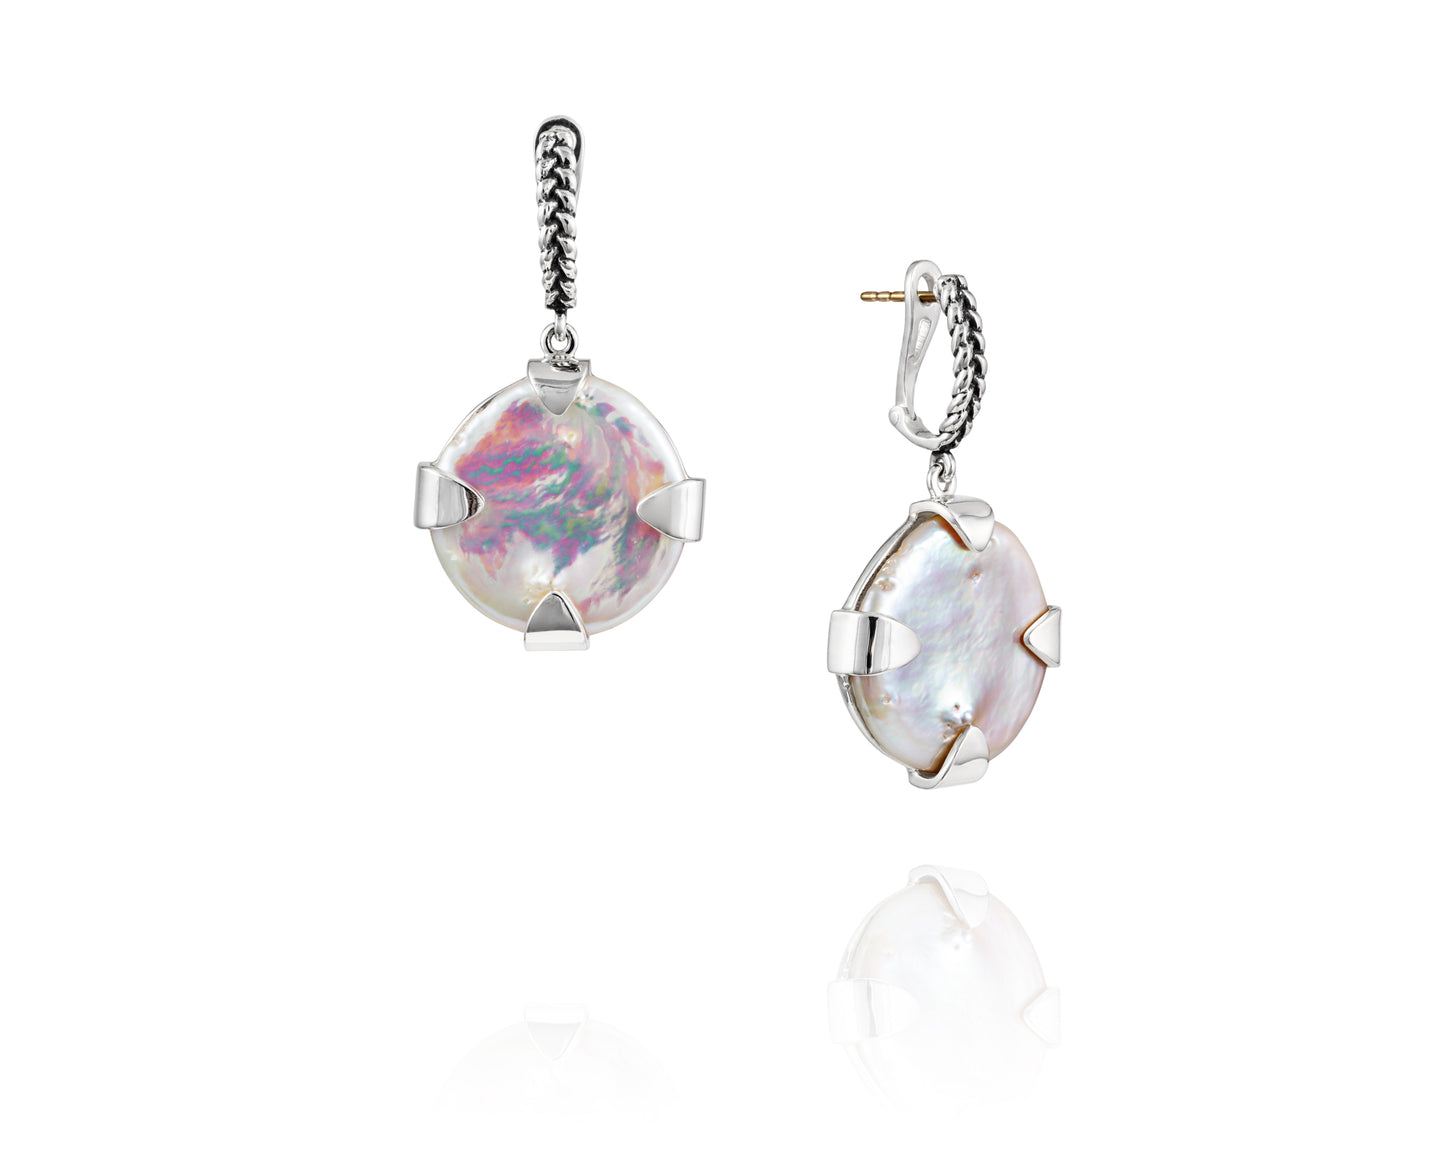 Signature Coin Pearl Drop Earrings